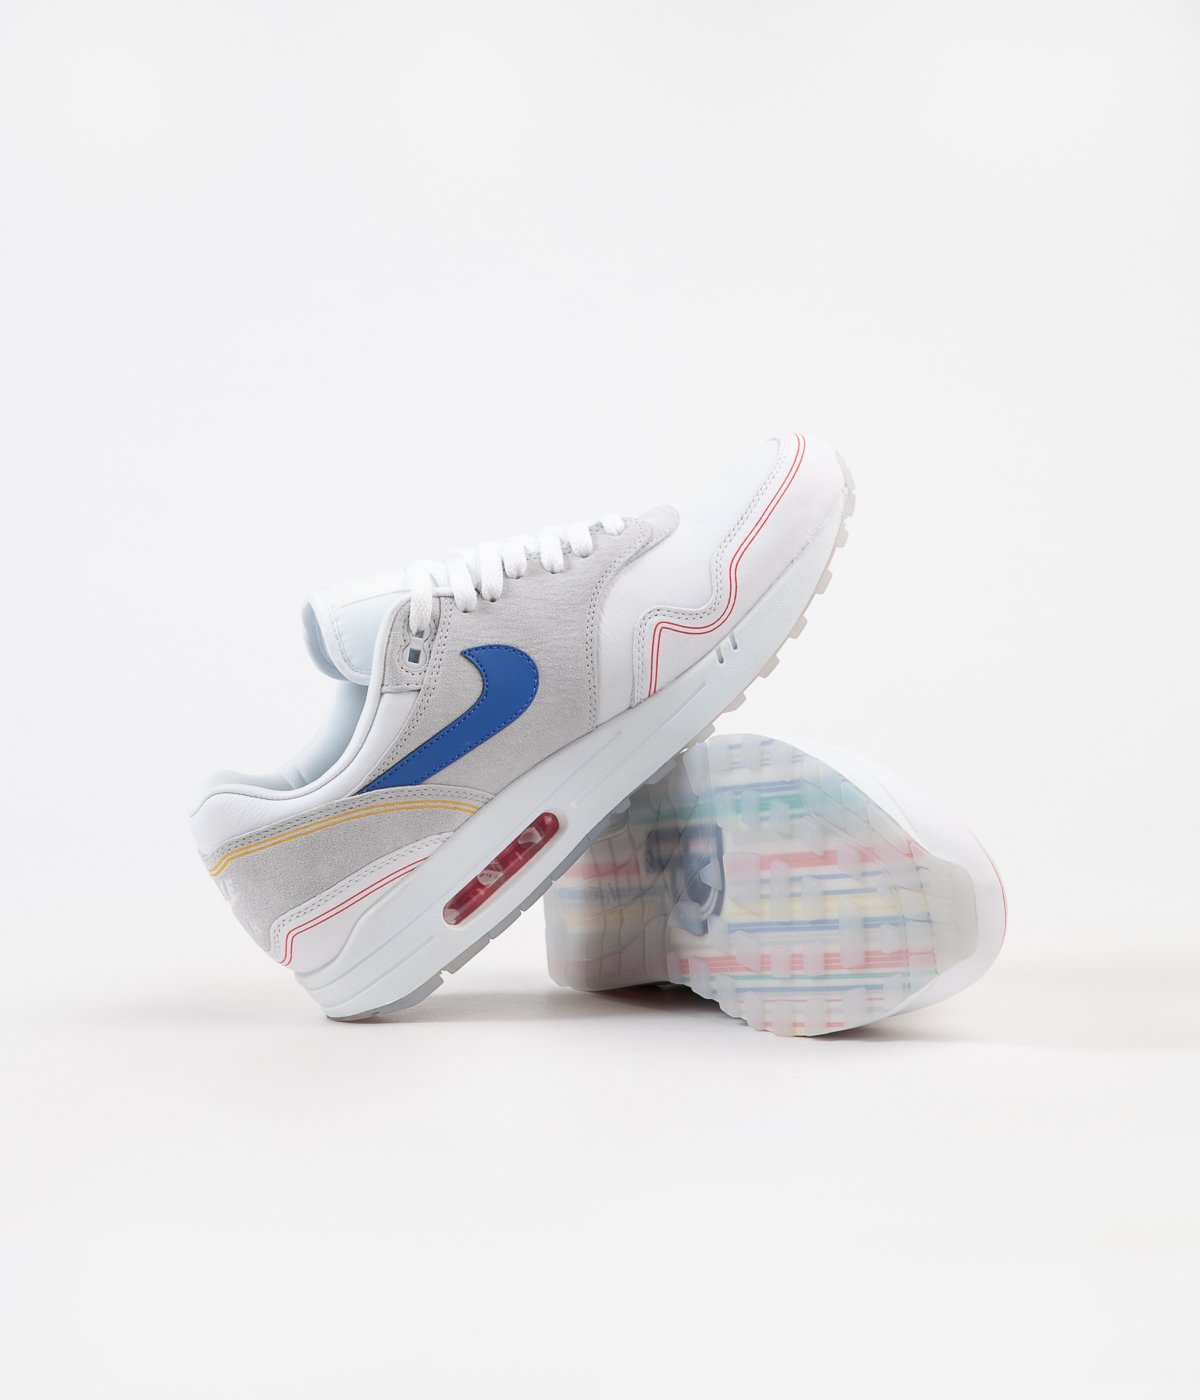 "93f7ec5a1da12 Crepe check – Air Max 1 Pompidou Pack – ""By Day"" 